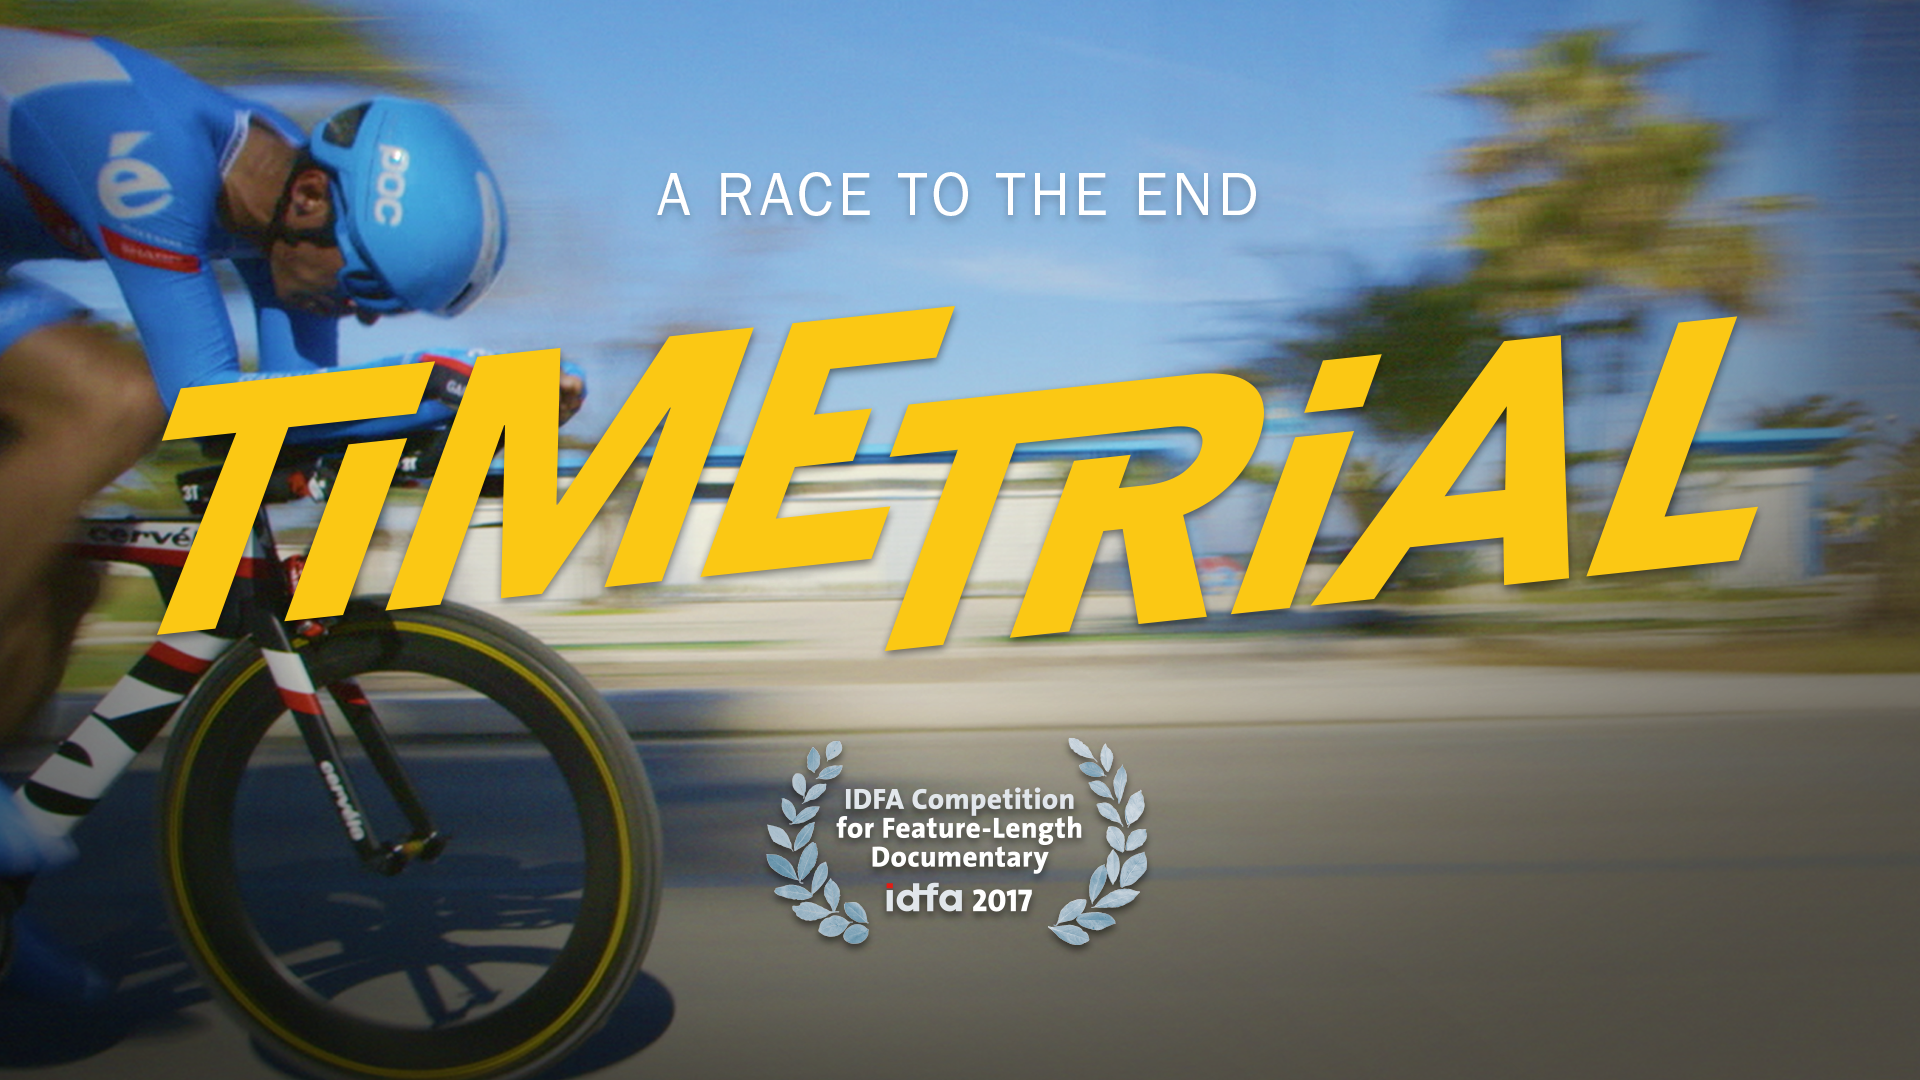 Time Trial - A Race to the end. David Millar